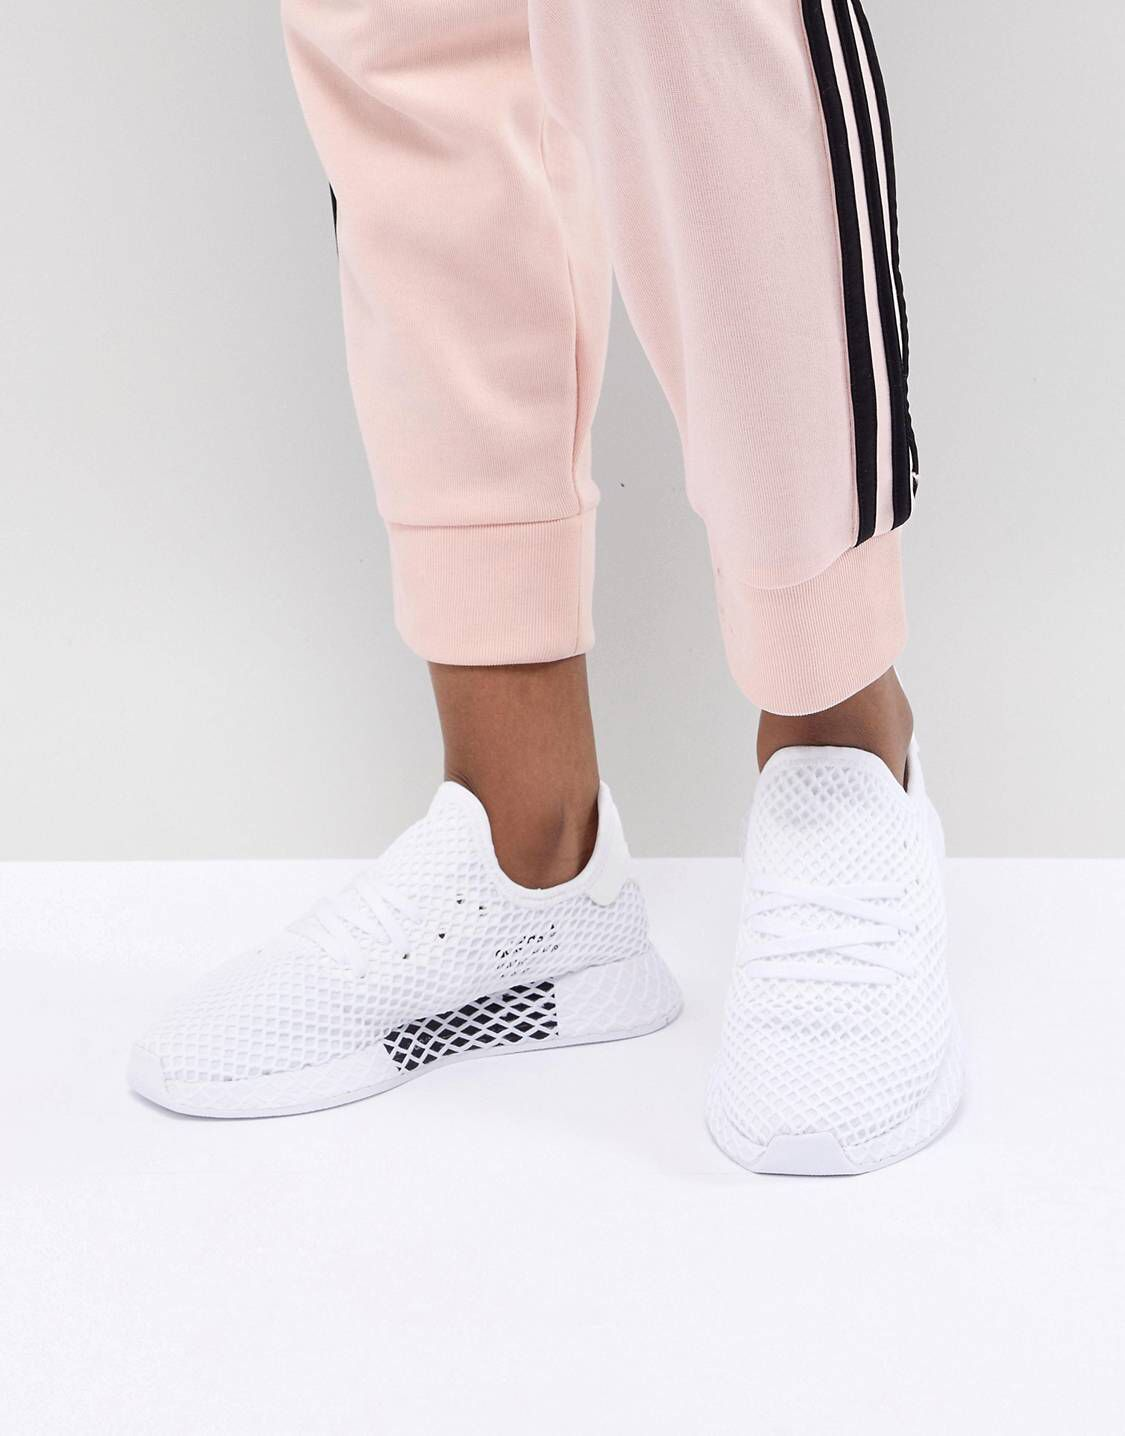 pretty nice 53a2c 0d5cf Zapatillas de deporte blancas Deerupt de adidas Originals   Shoes ...